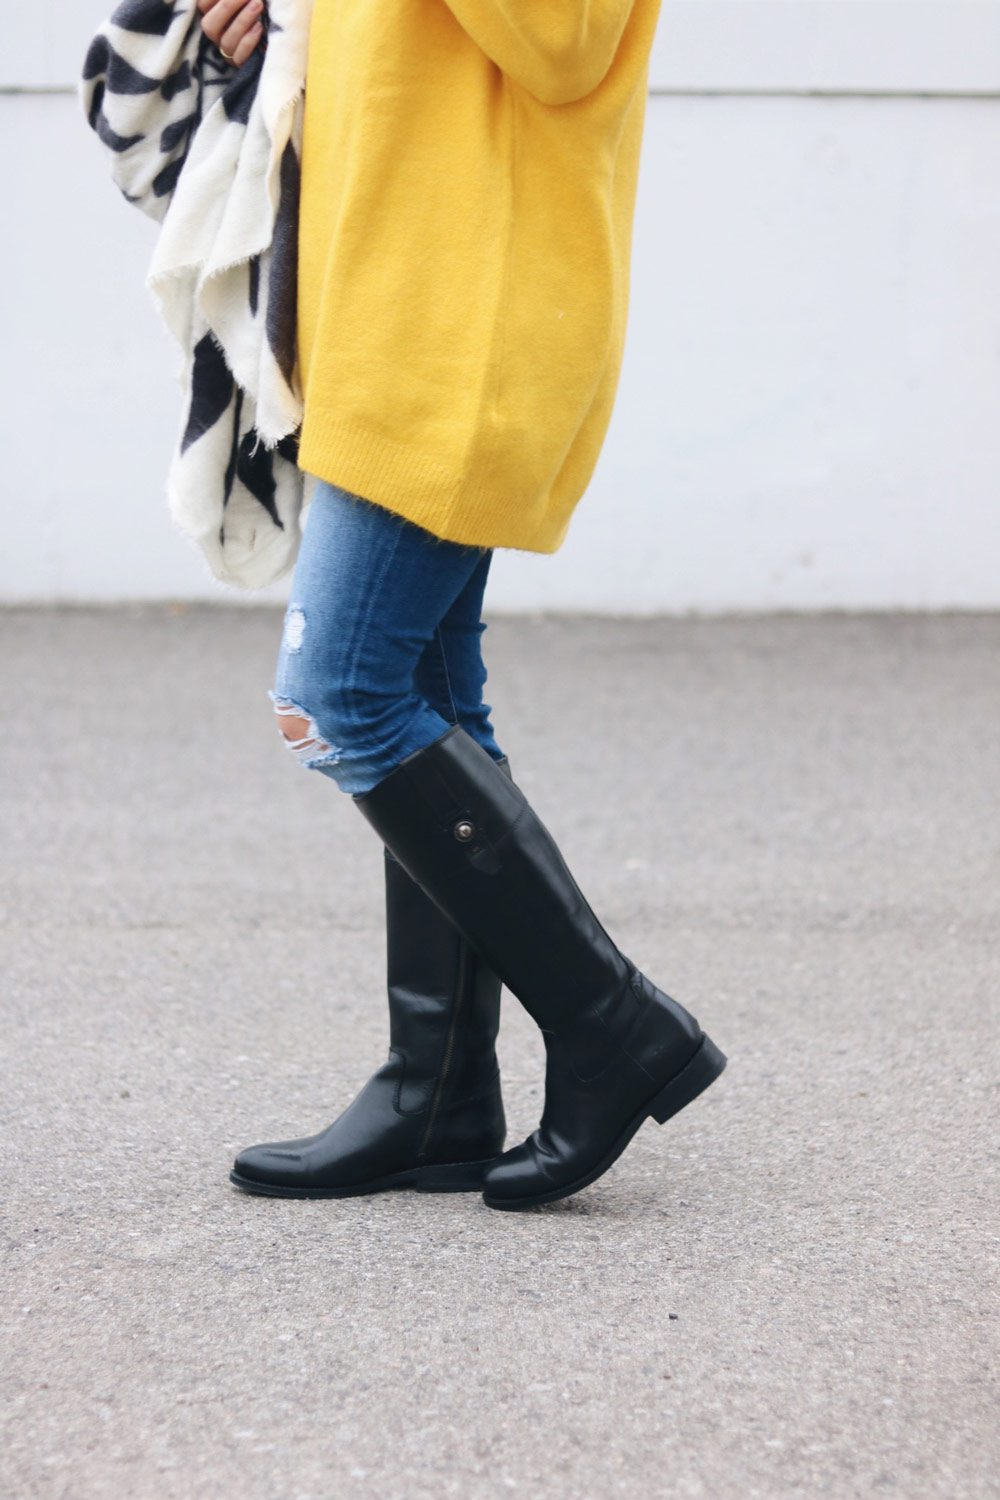 frye-boots-and-yellow-zara-sweater